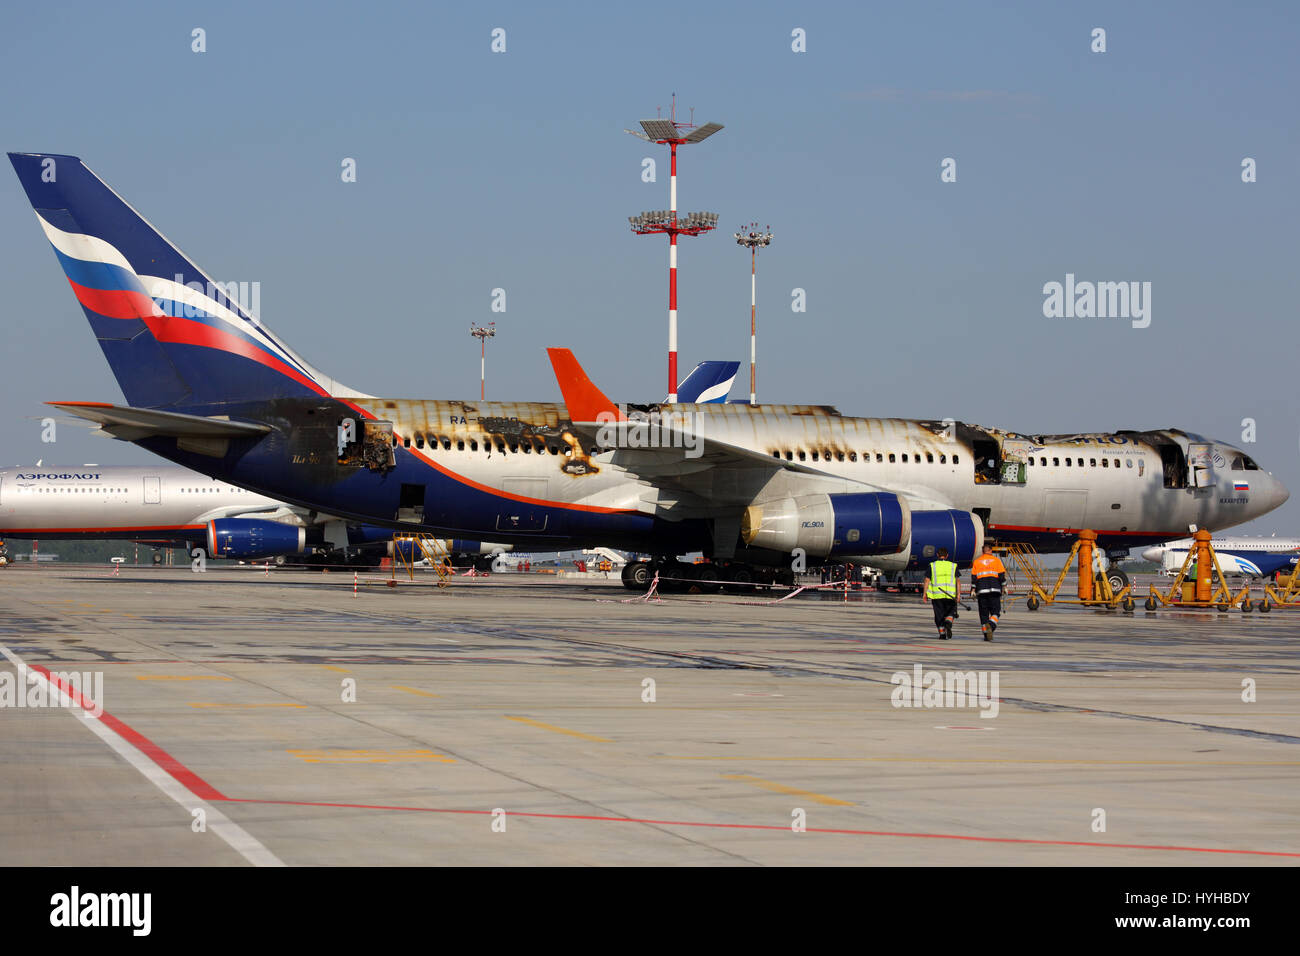 SHEREMETYEVO, MOSCOW REGION, RUSSIA - JUNE 3, 2014: Ilyushin IL-96-300 caught fire while standing at Sheremetyevo Stock Photo